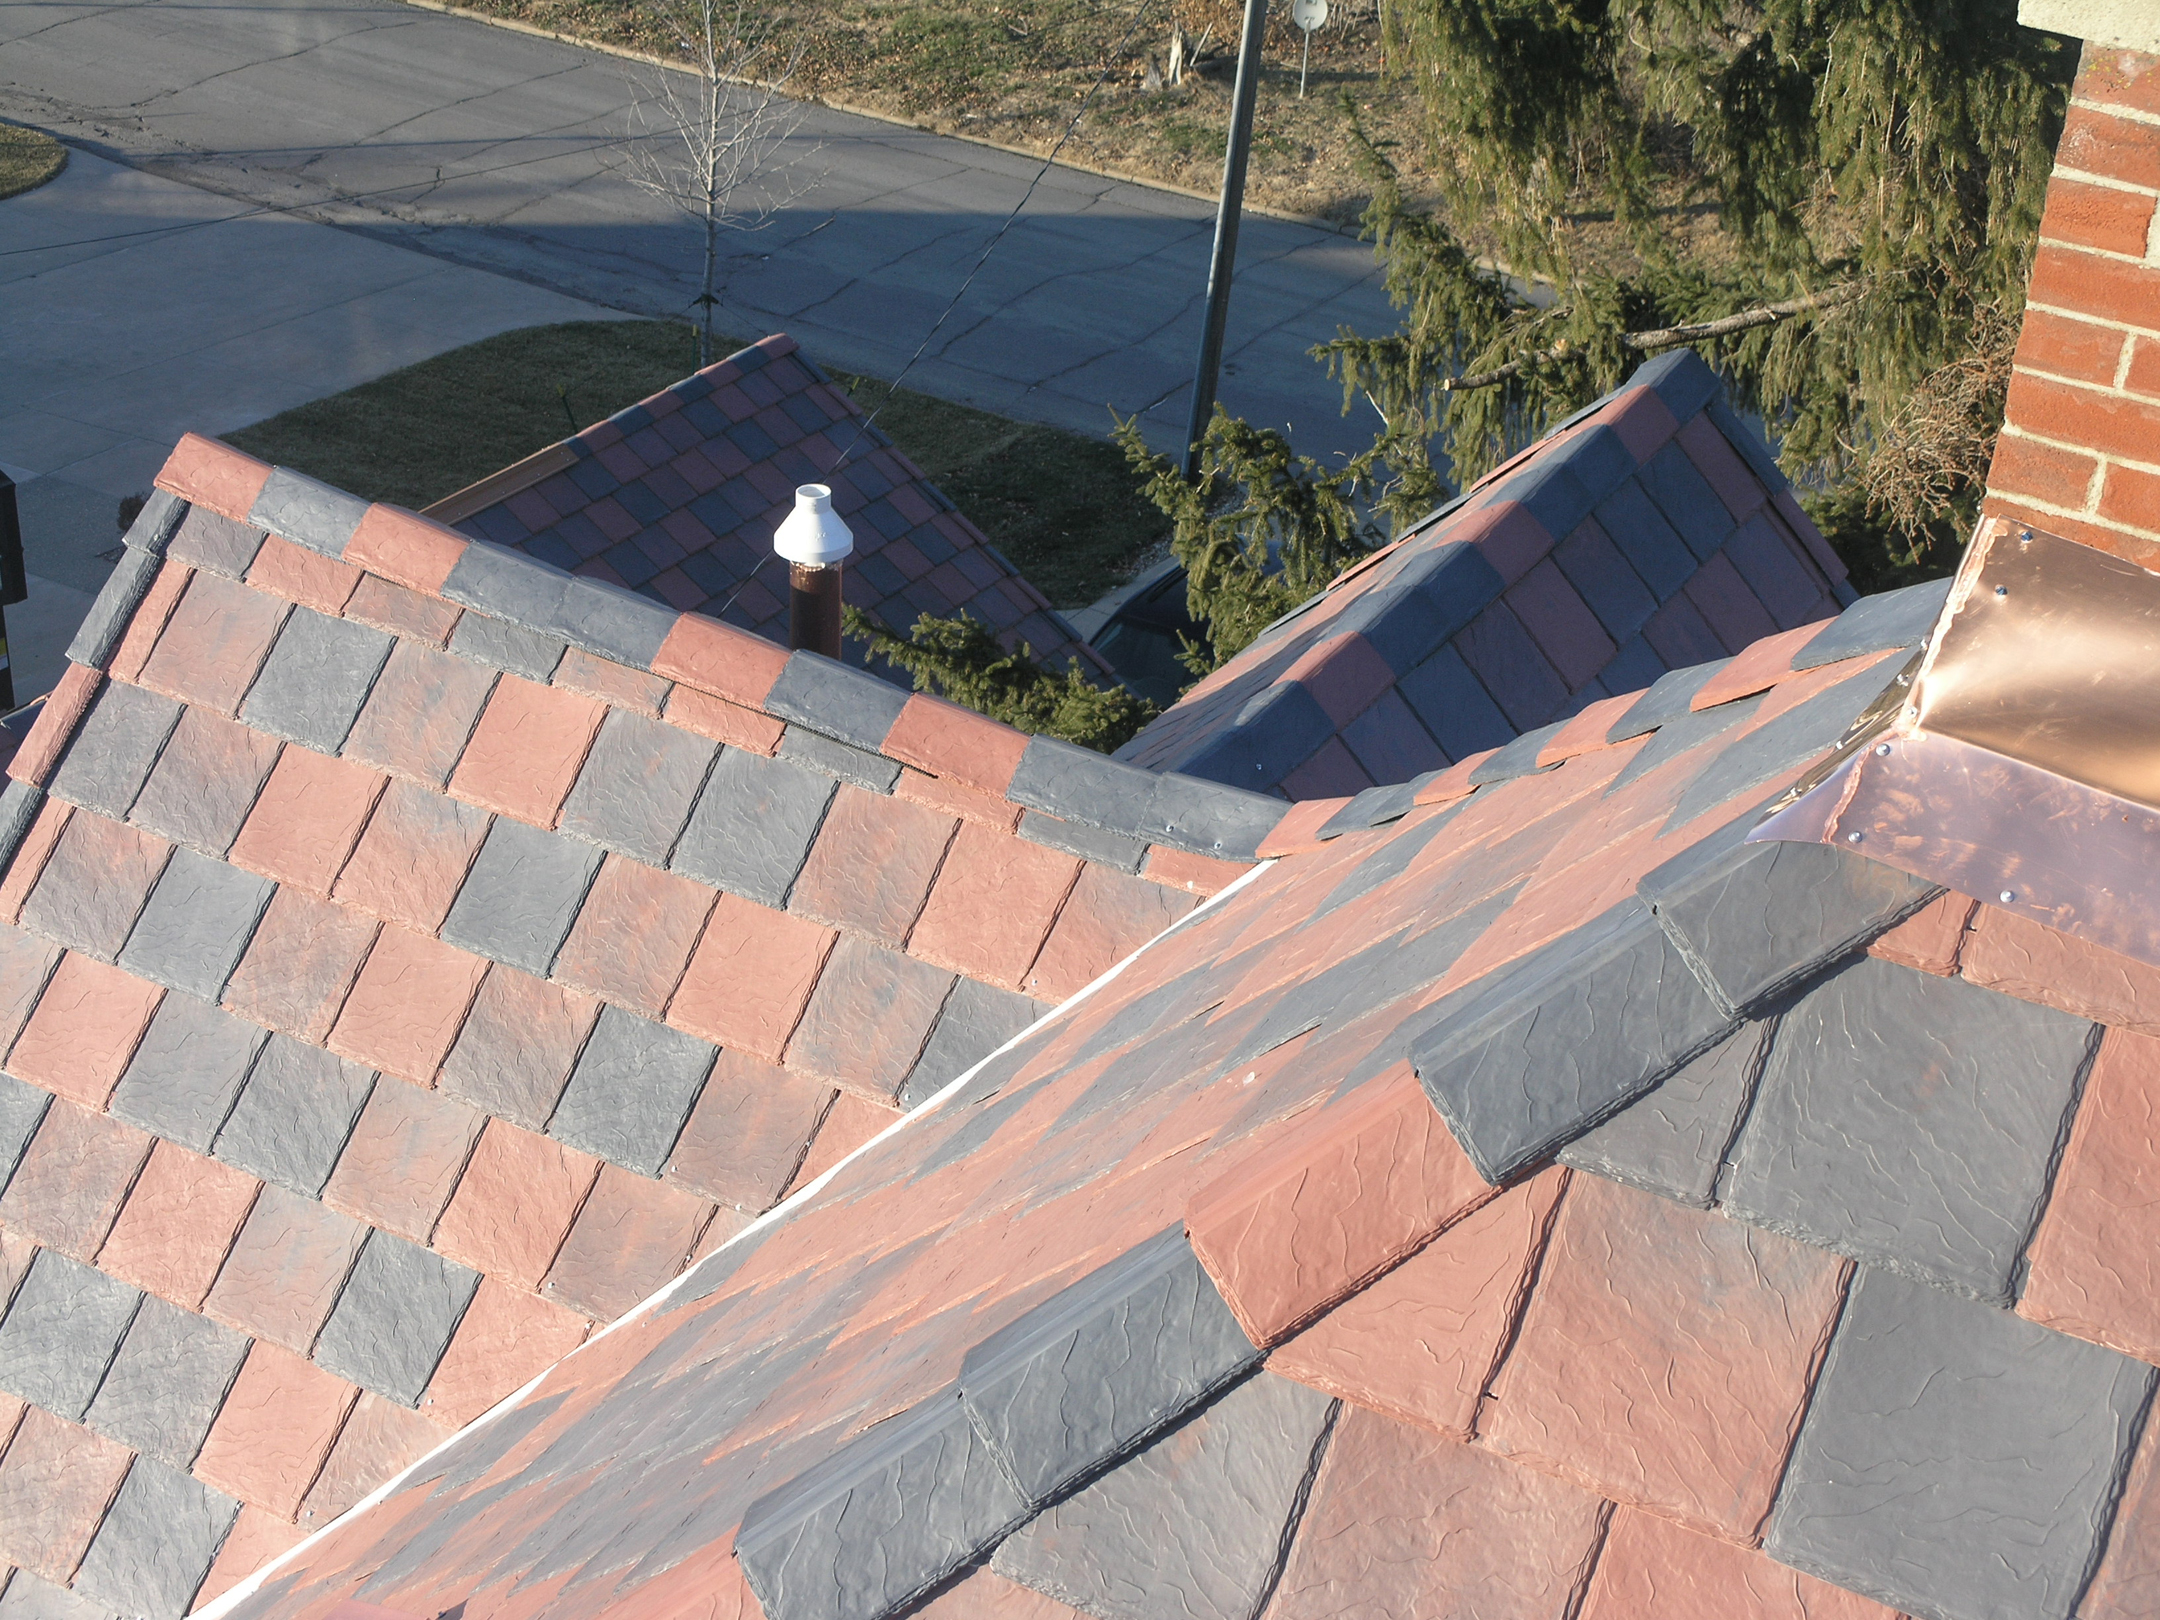 Synthetic shake up prosales online roofing green products Davinci roofing products